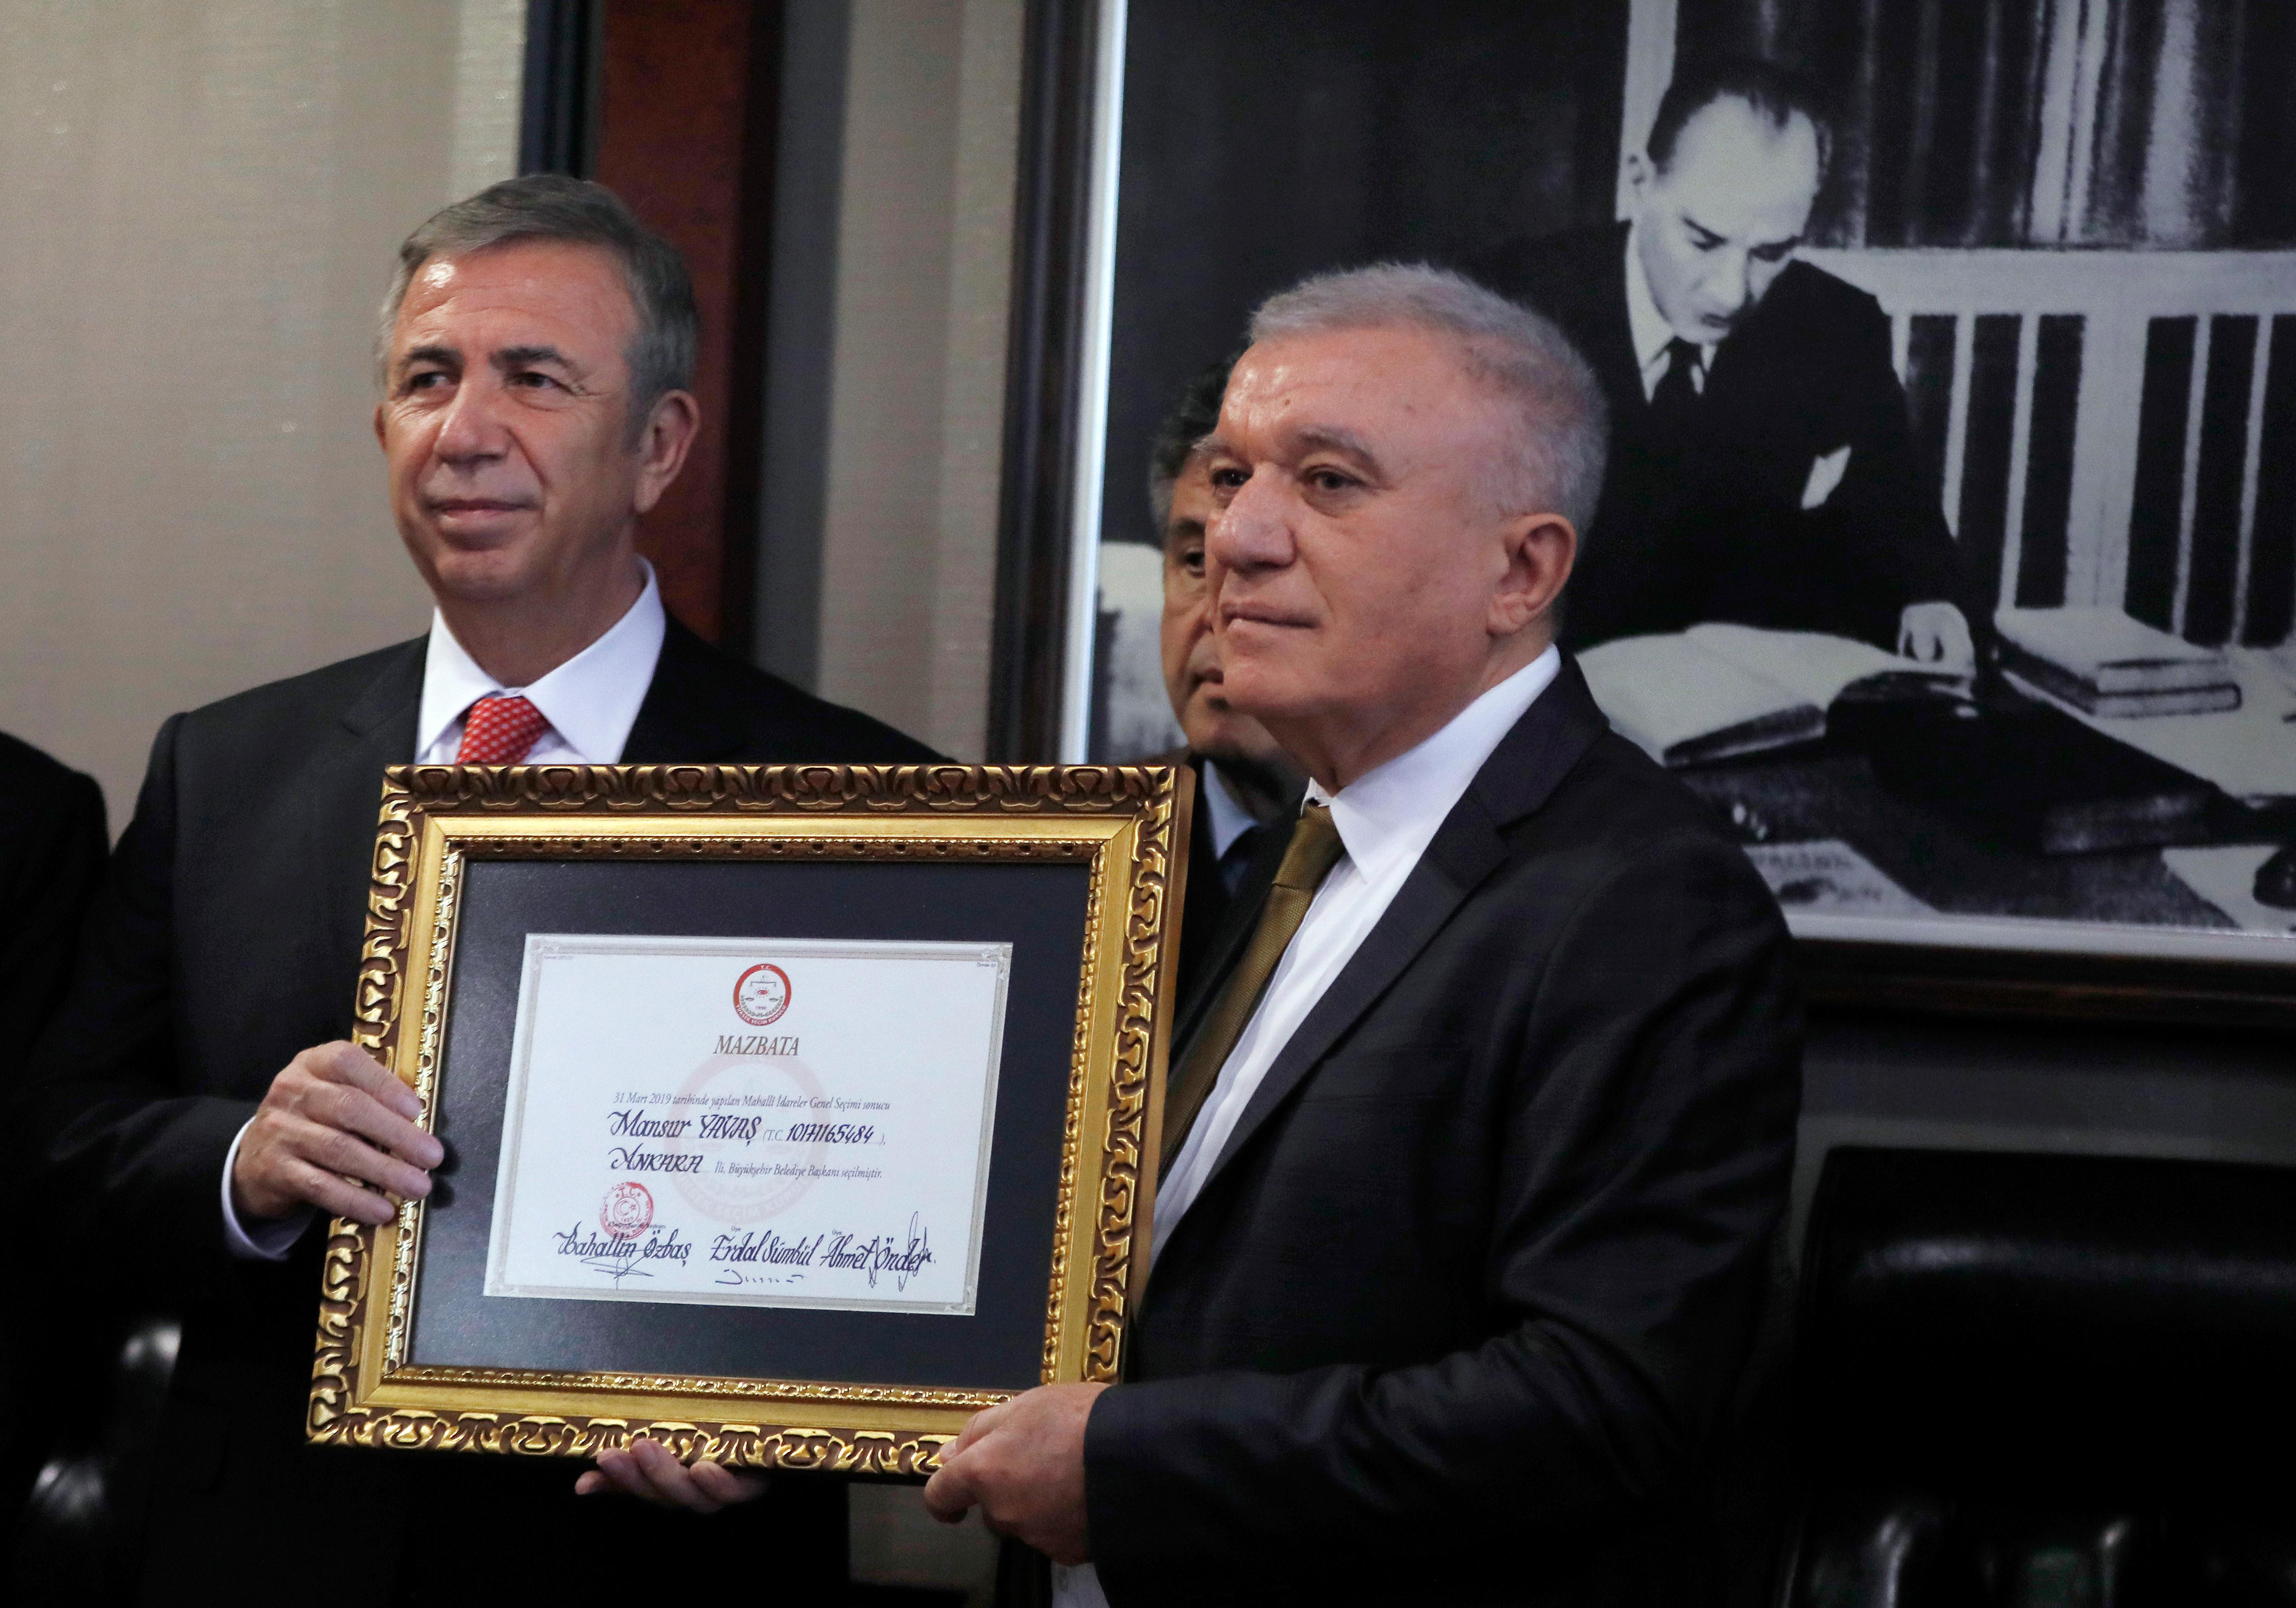 Mansur Yavas, the main Turkish opposition's candidate for the Turkish capital Ankara, left, receives the document from Bahattin Ozbas, the head of the election board, confirming him as the new mayor, in Ankara, Turkey, Monday April 8, 2019. (AP Photo/Burhan Ozbilici)